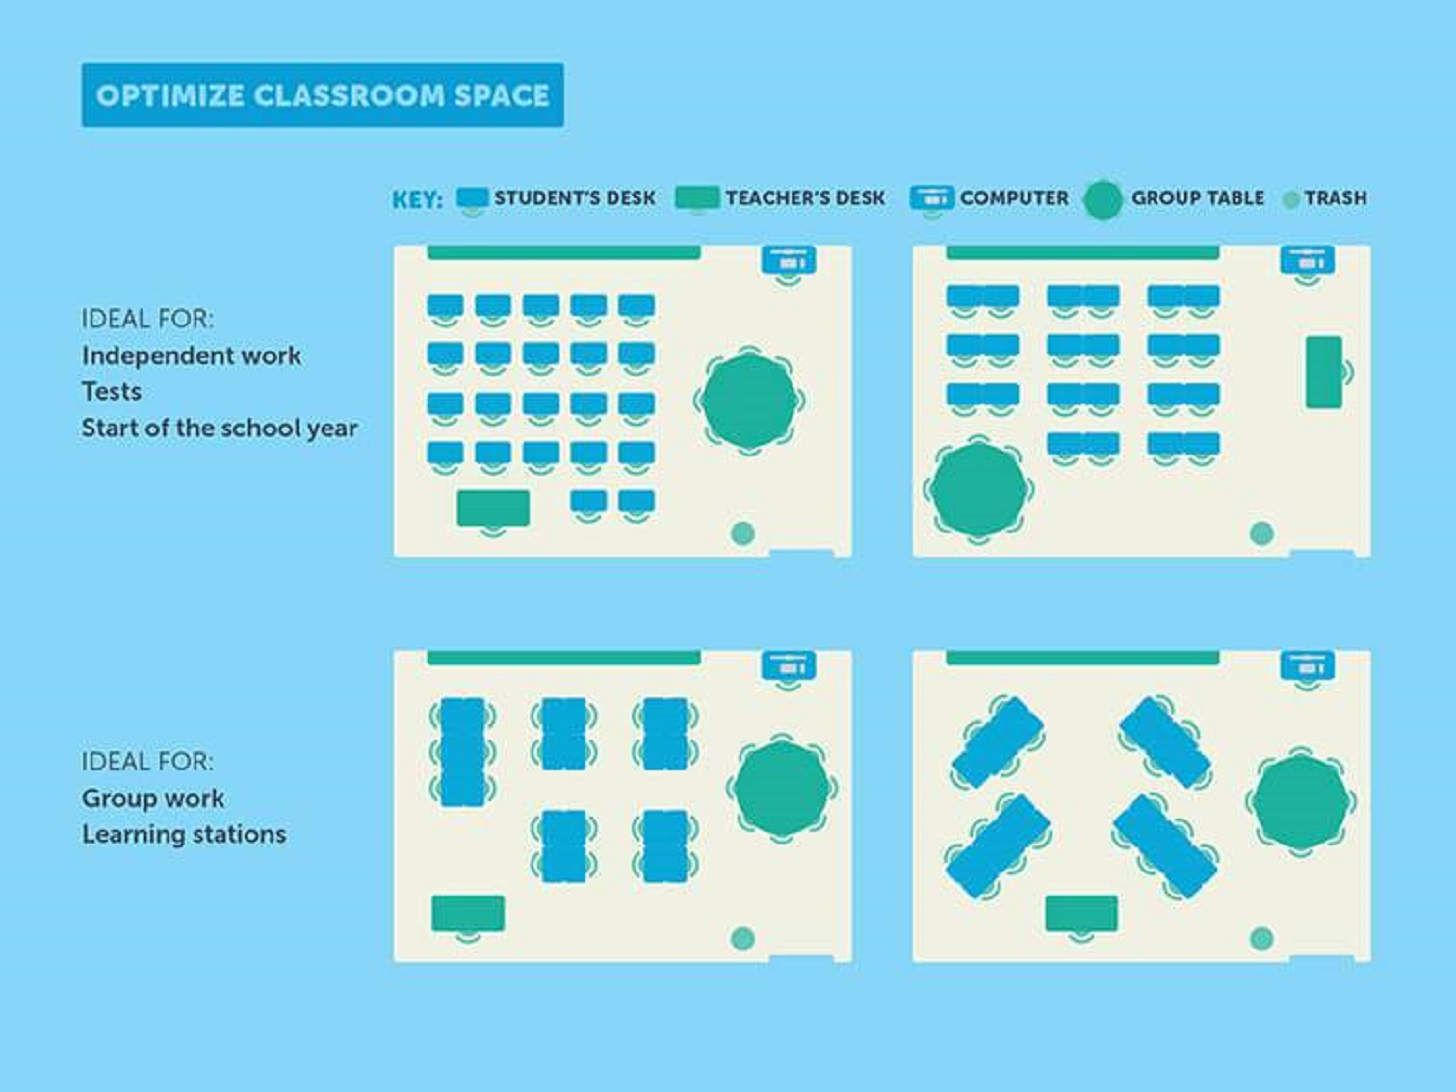 Classroom Design Aids Student Learning ~ Ideas to promote more creativity in your classroom learn